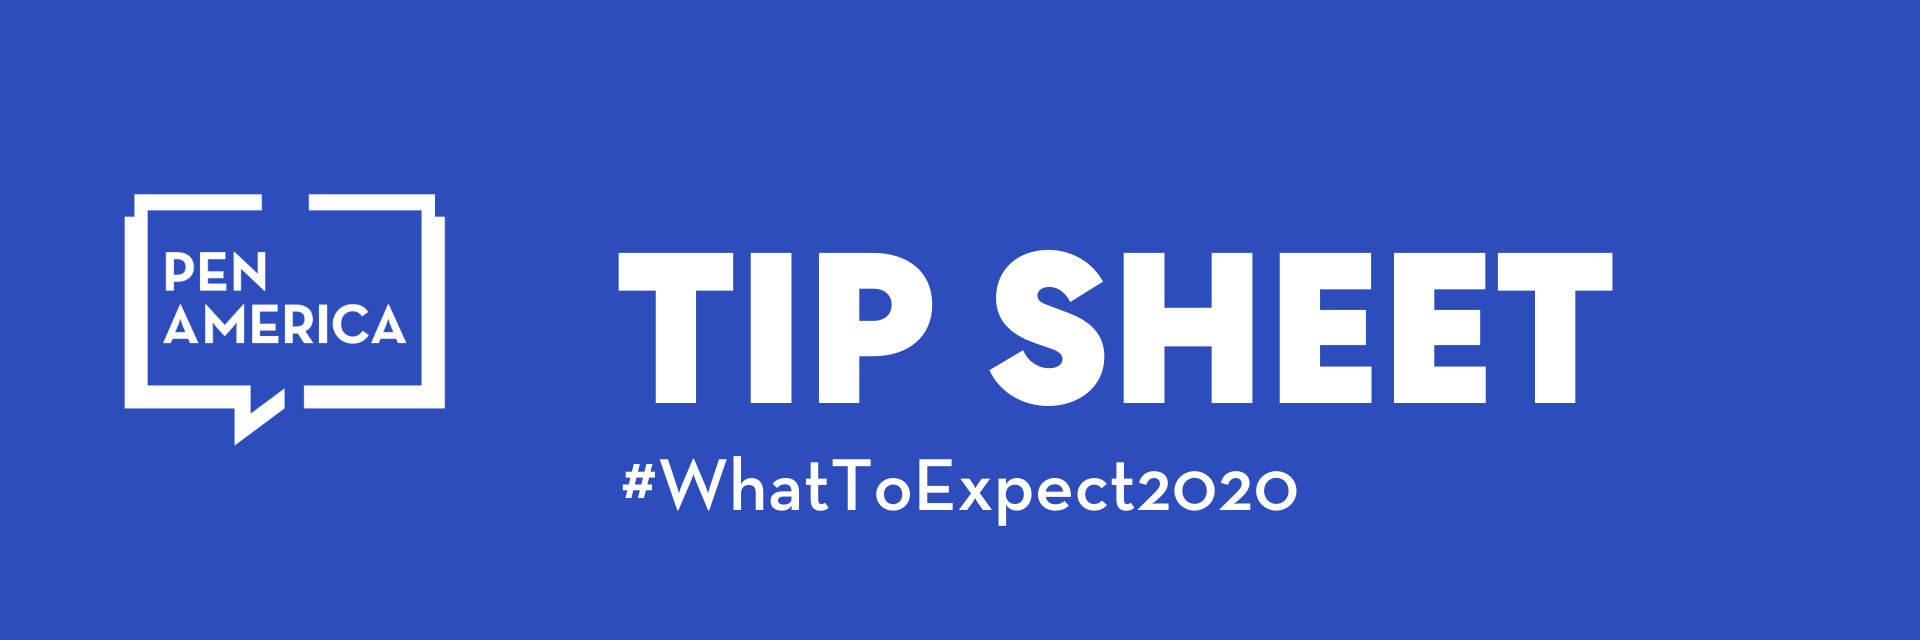 "Tip sheet banner: logo, ""Tip Sheet"" and ""#WhatToExpect2020"" in words"